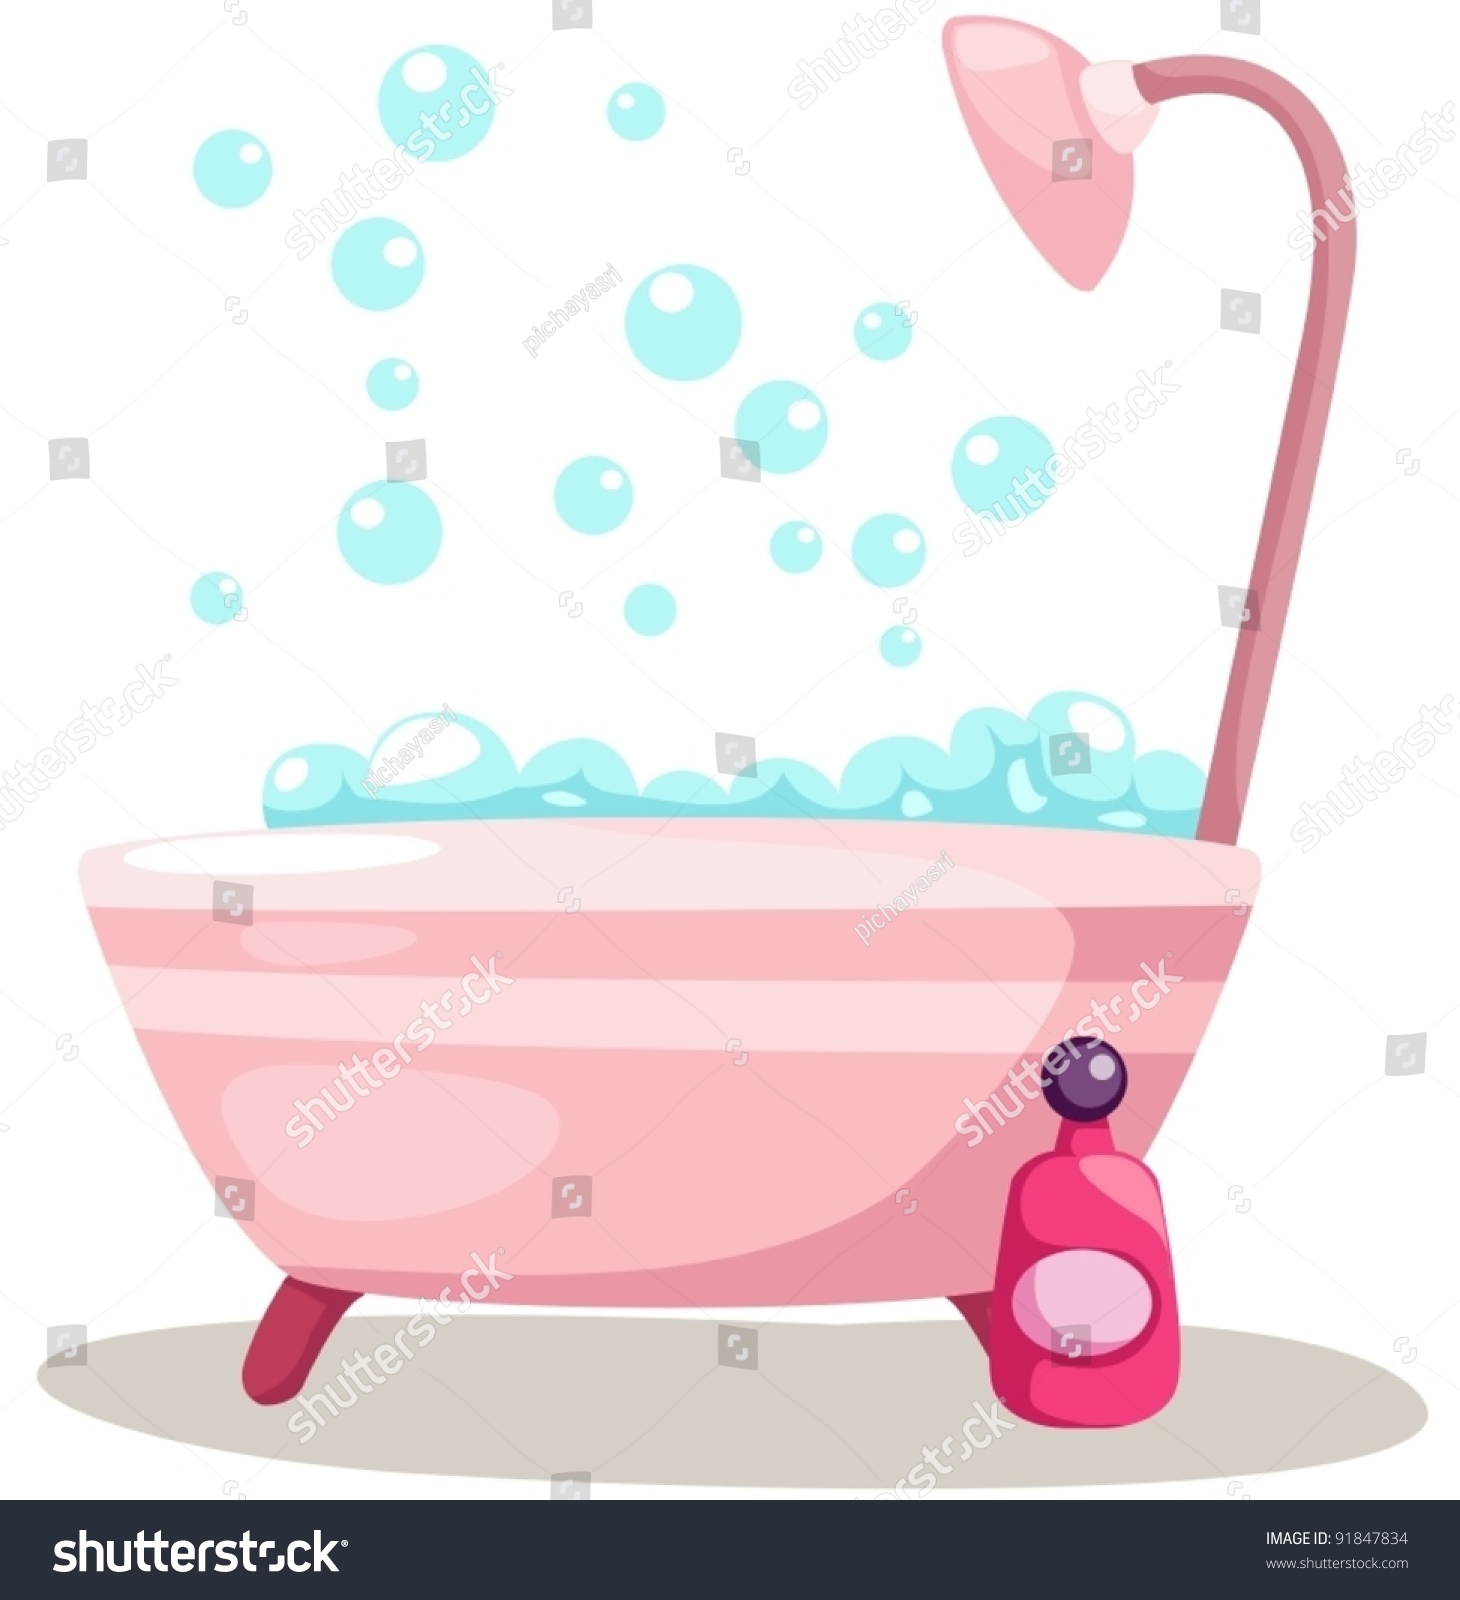 Illustration Of Isolated A Bathtub On White Background